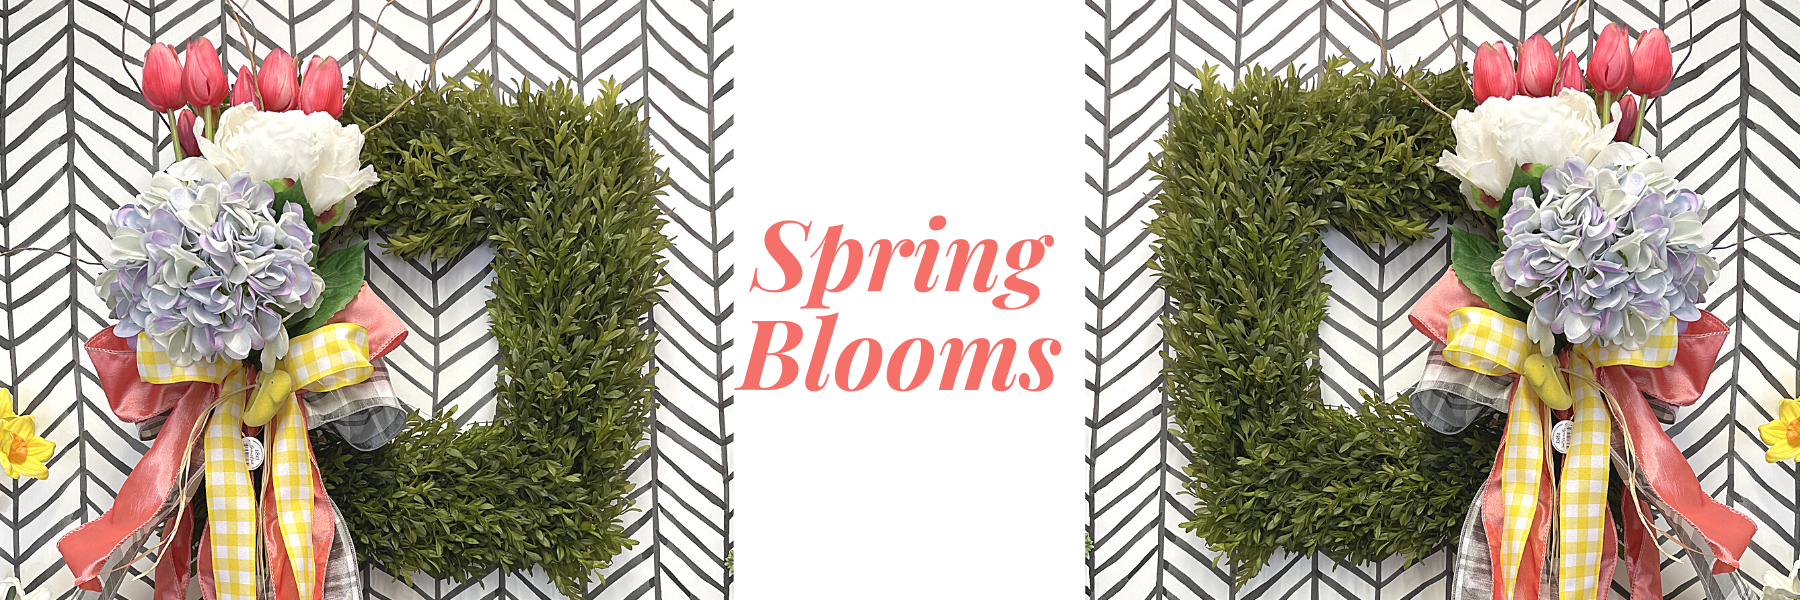 Start with a Premade Wreath & Add Spring Blooms